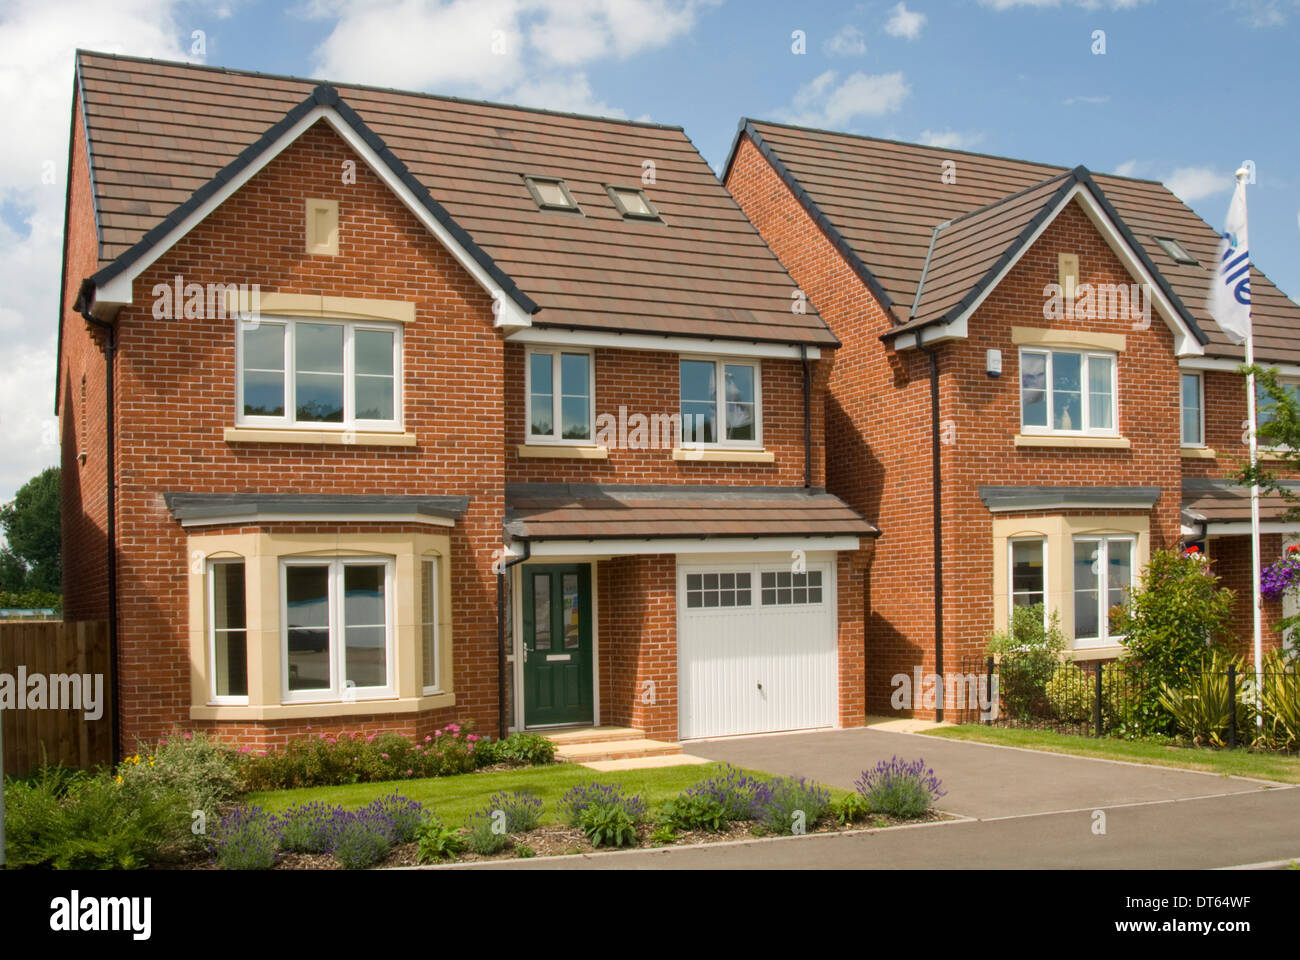 New build red brick detached house stock photo royalty for New brick homes